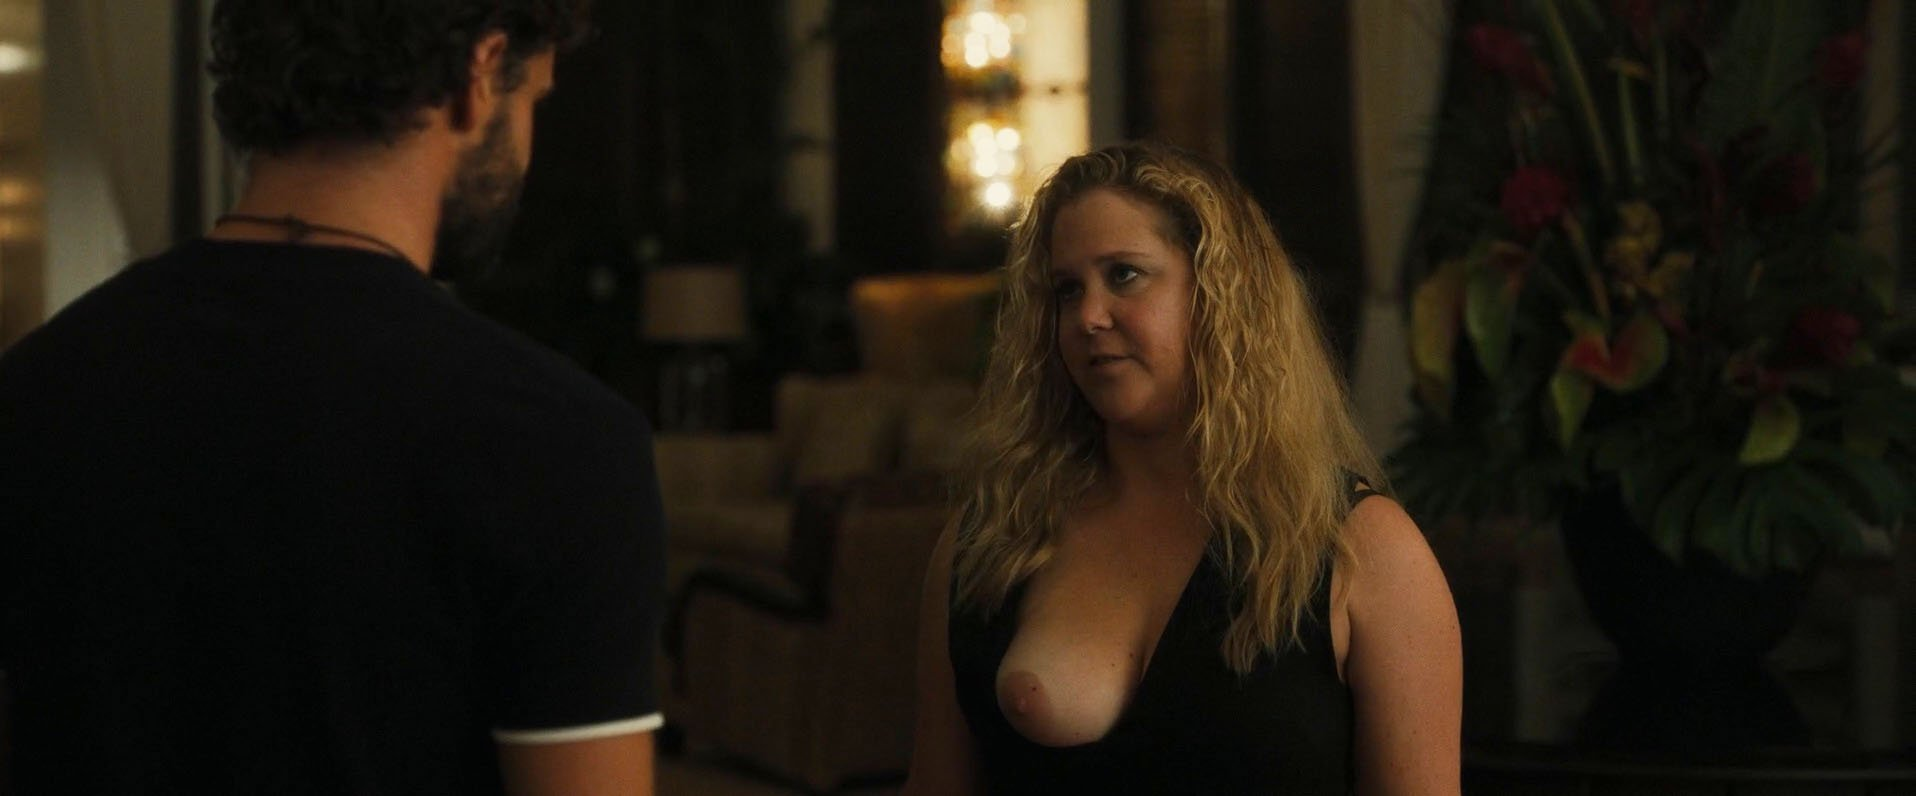 Amy schumer nudography